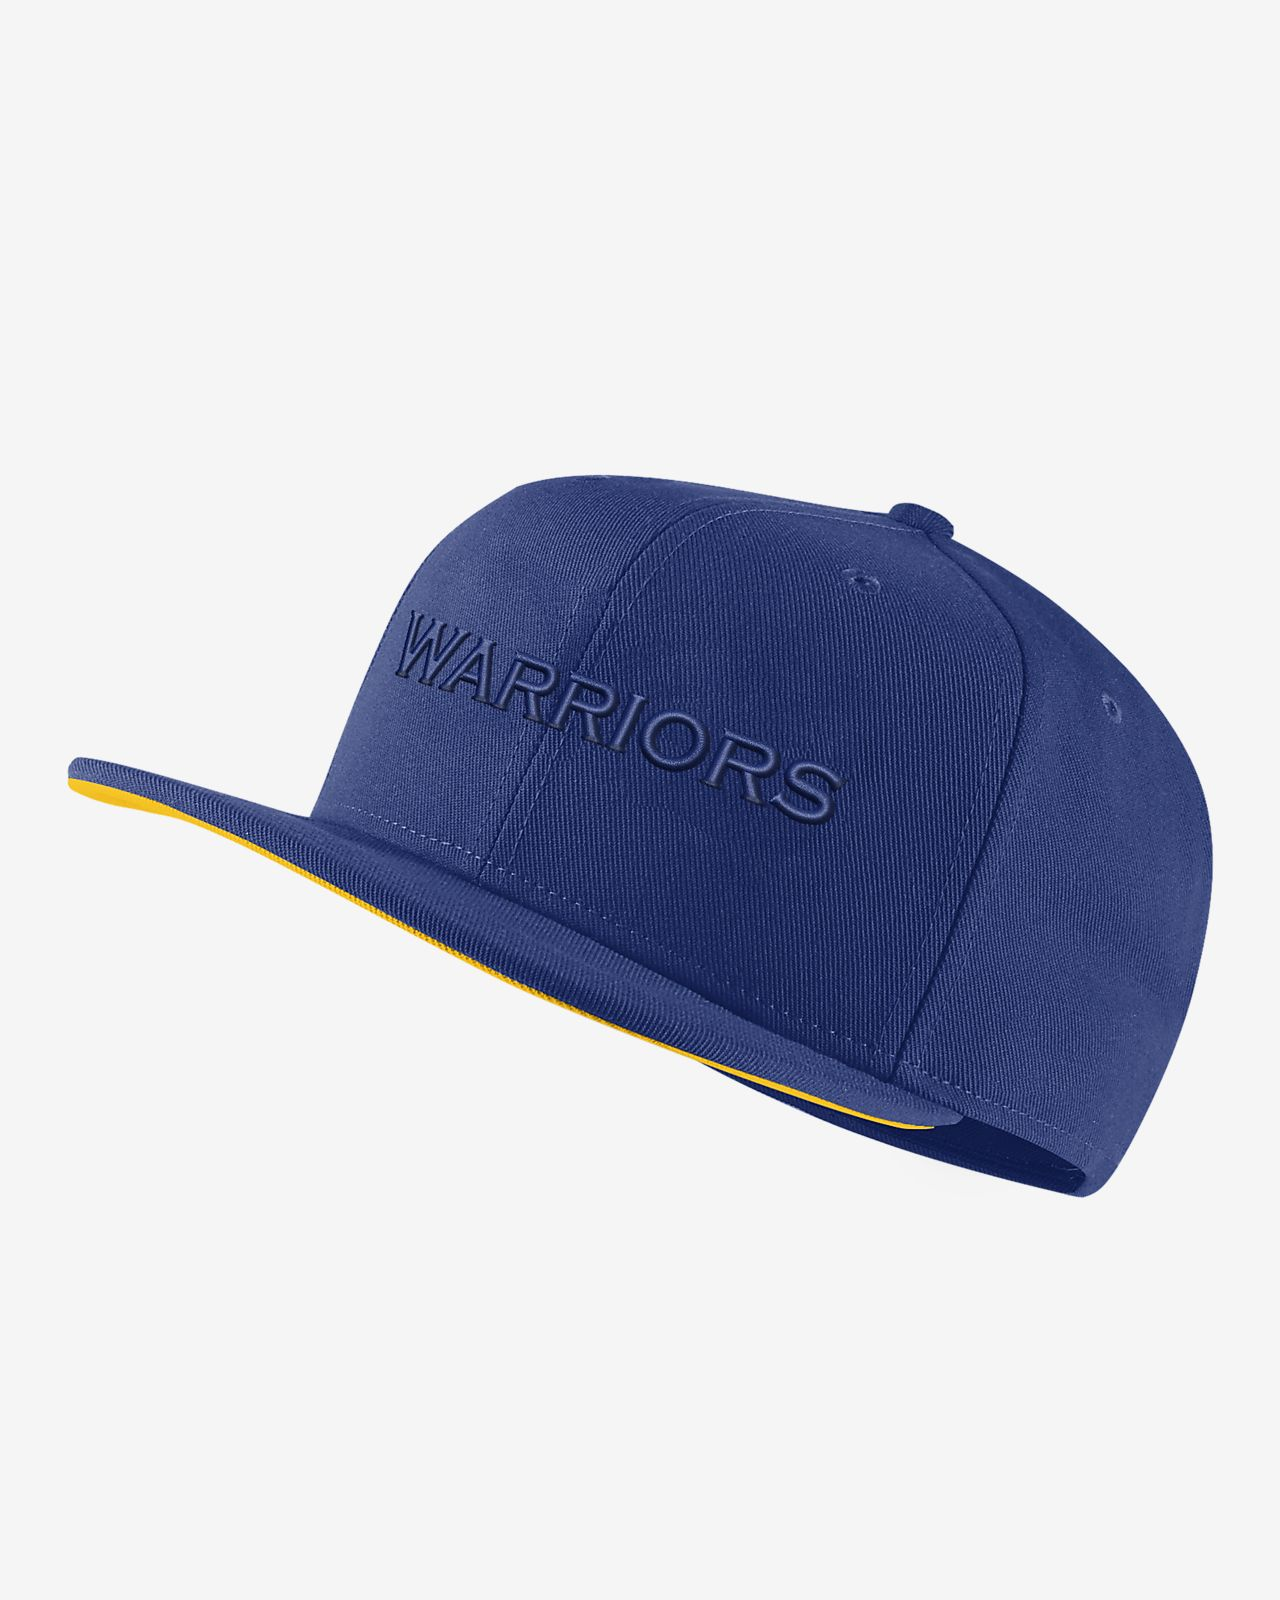 Golden State Warriors Nike AeroBill NBA Hat